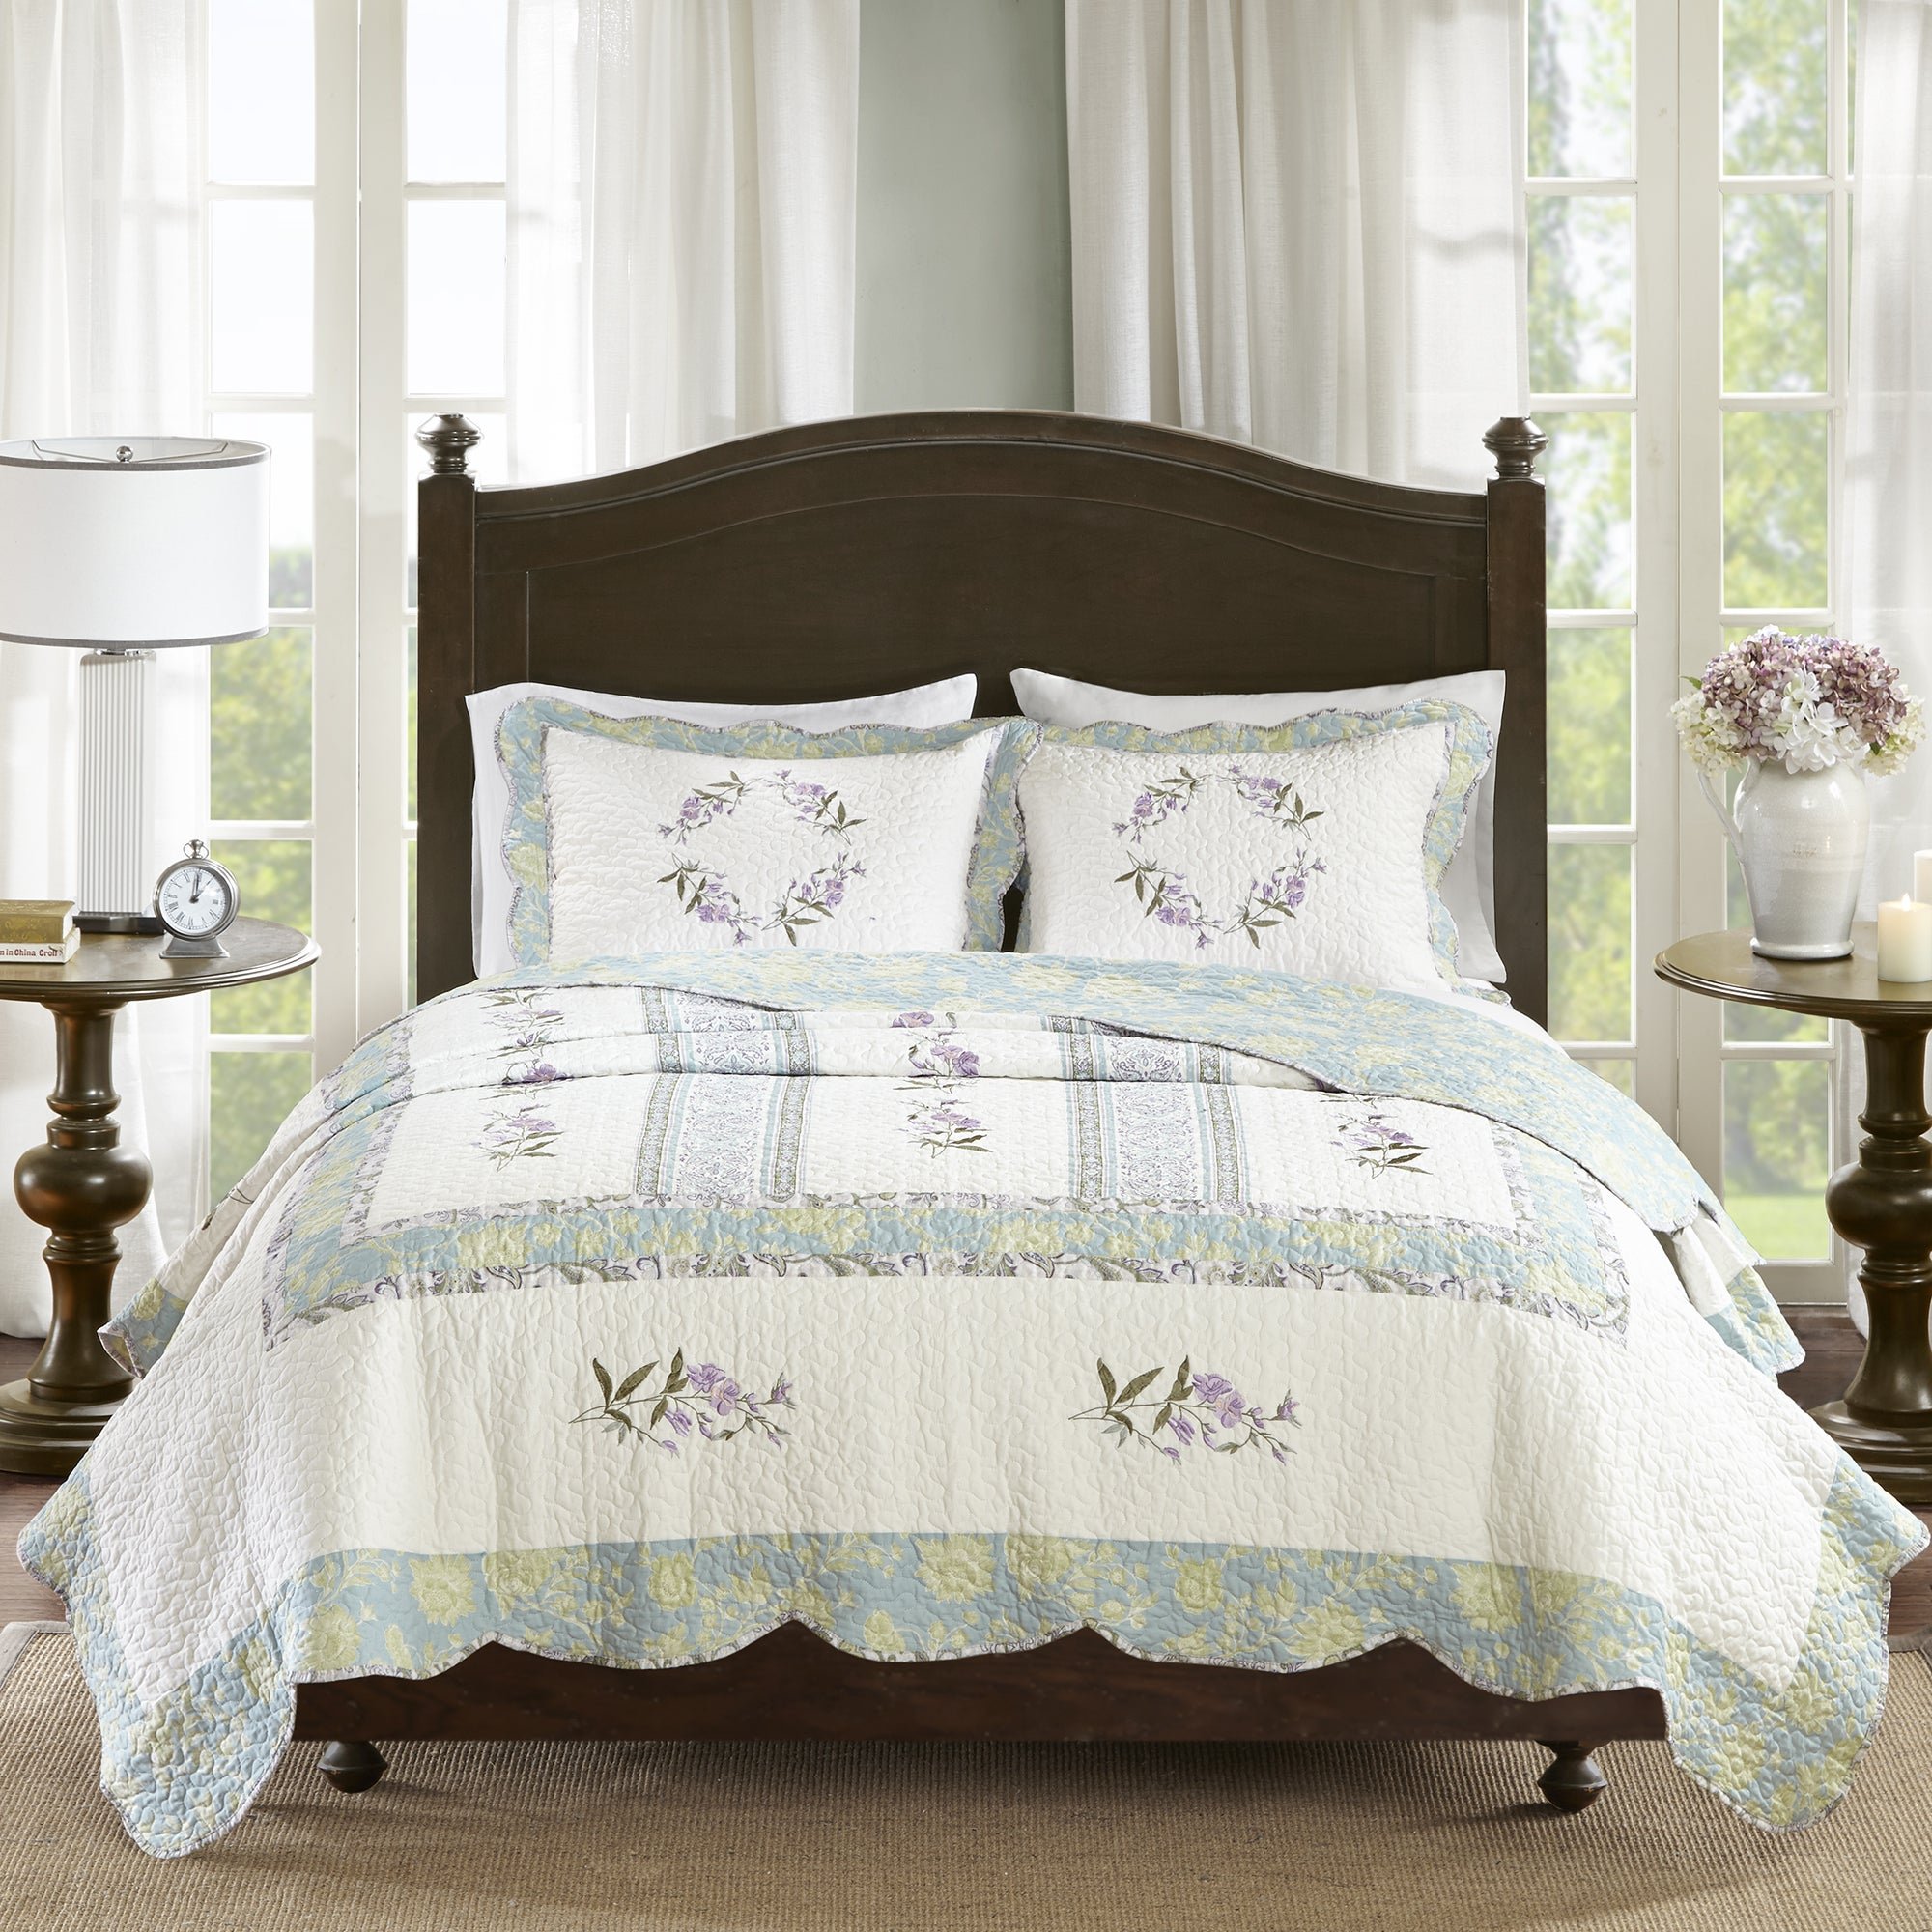 impression bedspread french today set overstock mystic product quilted oversized bath piece shipping free shores bedding quilt